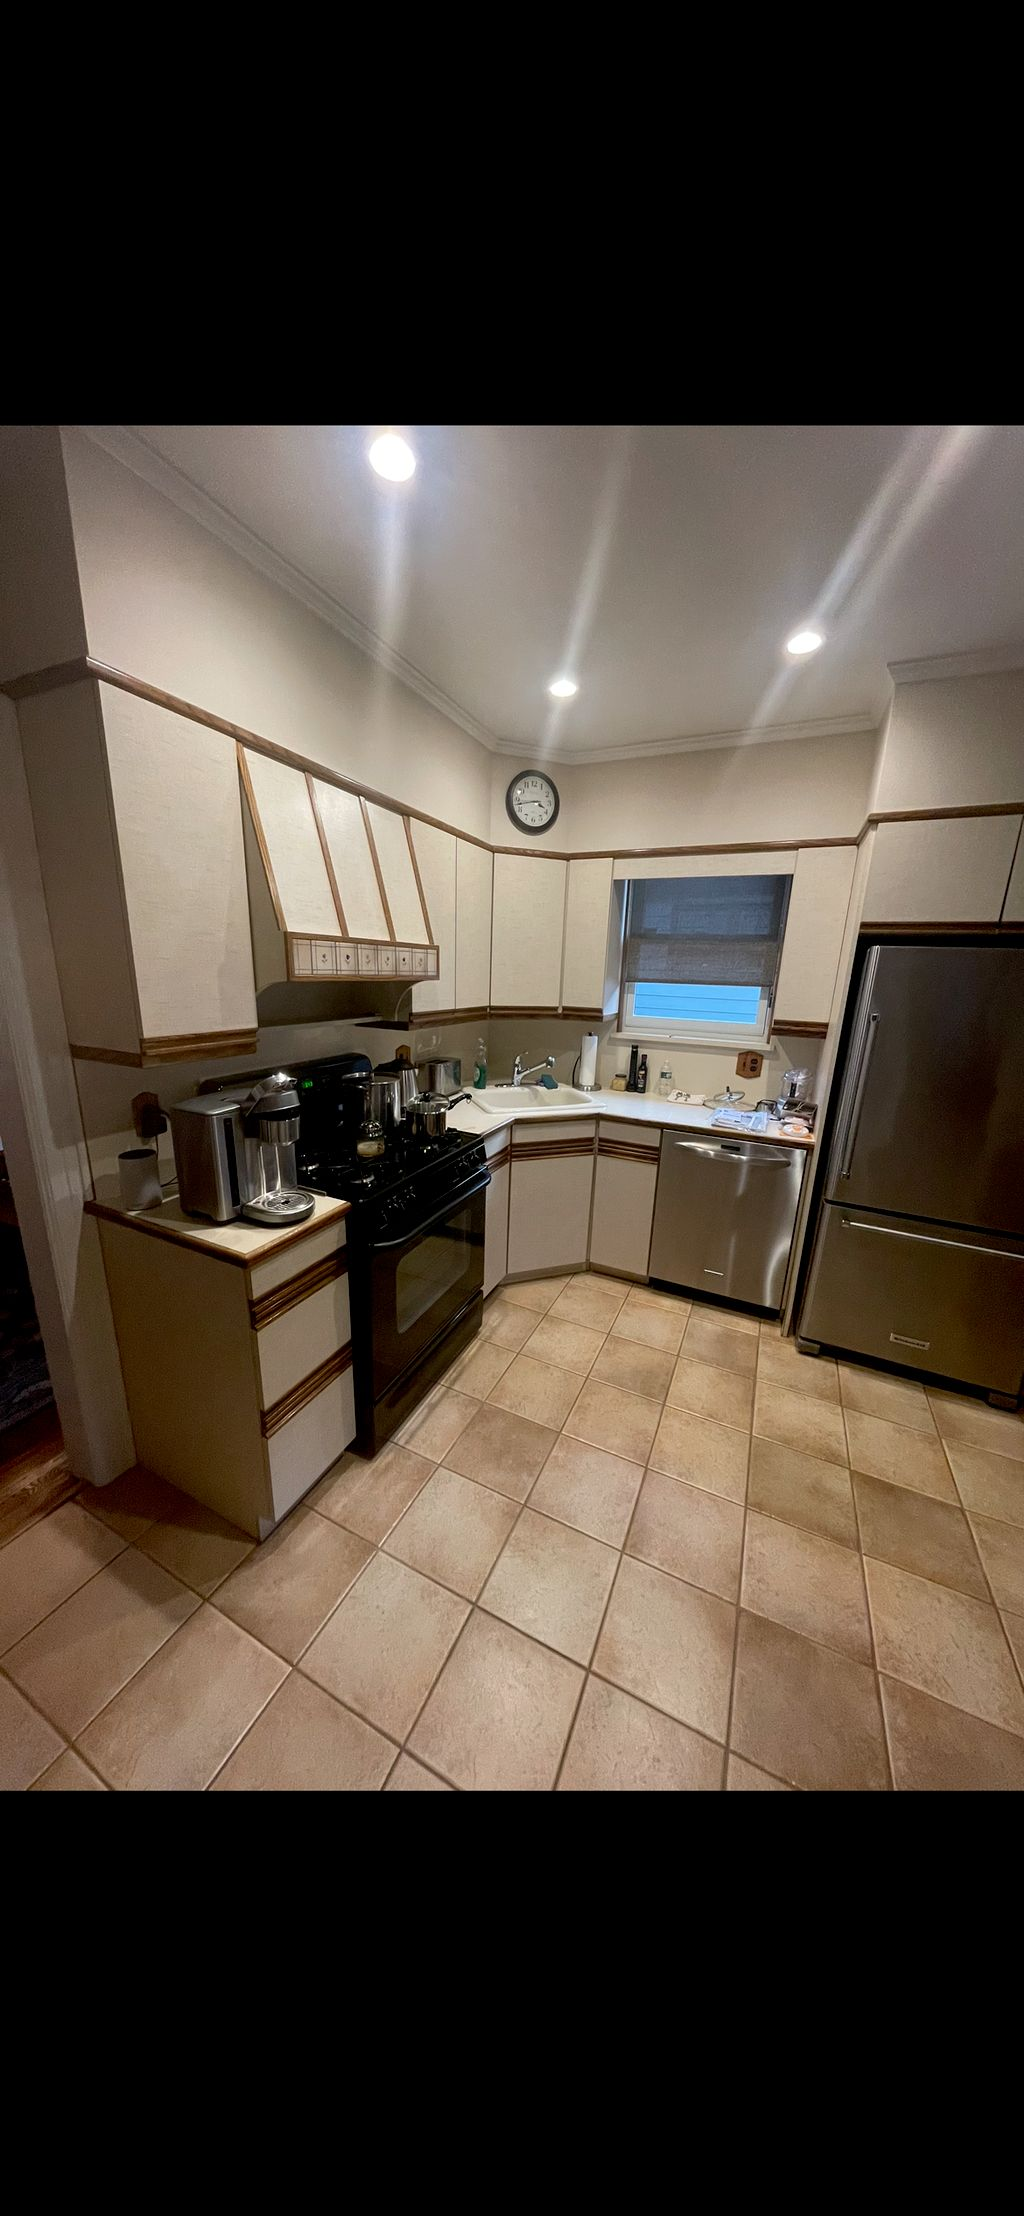 Cabinets and tiles  epoxy painting